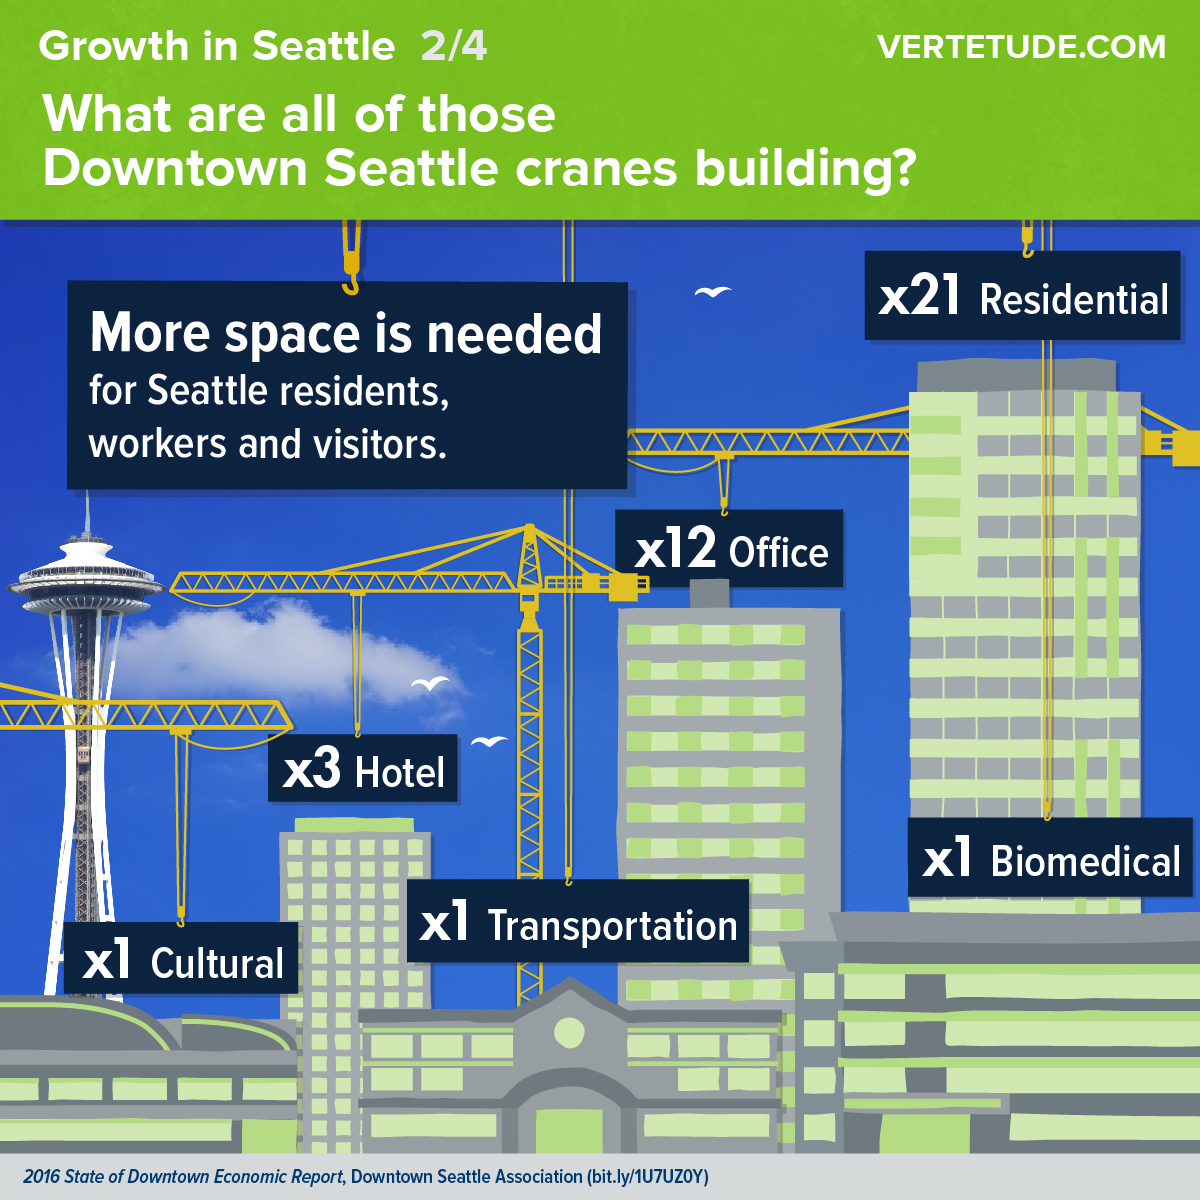 Infographic of growth in downtown Seattle, building types under construction